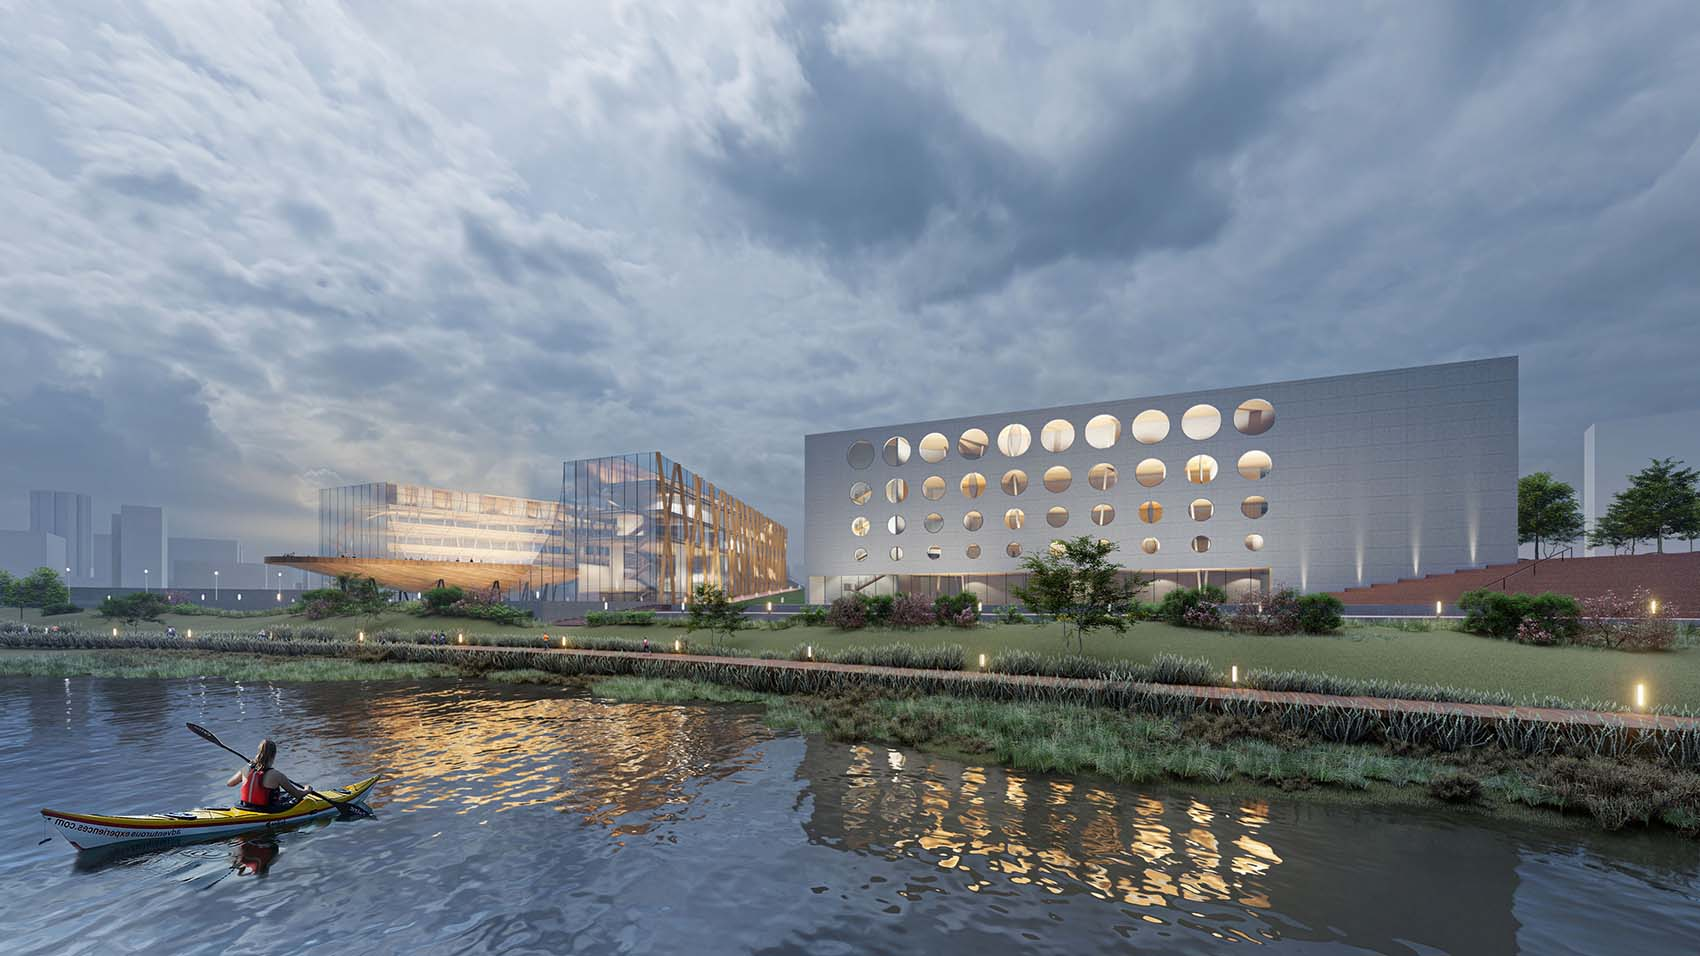 Marazzi wins a competition for an urban regeneration in Siberia